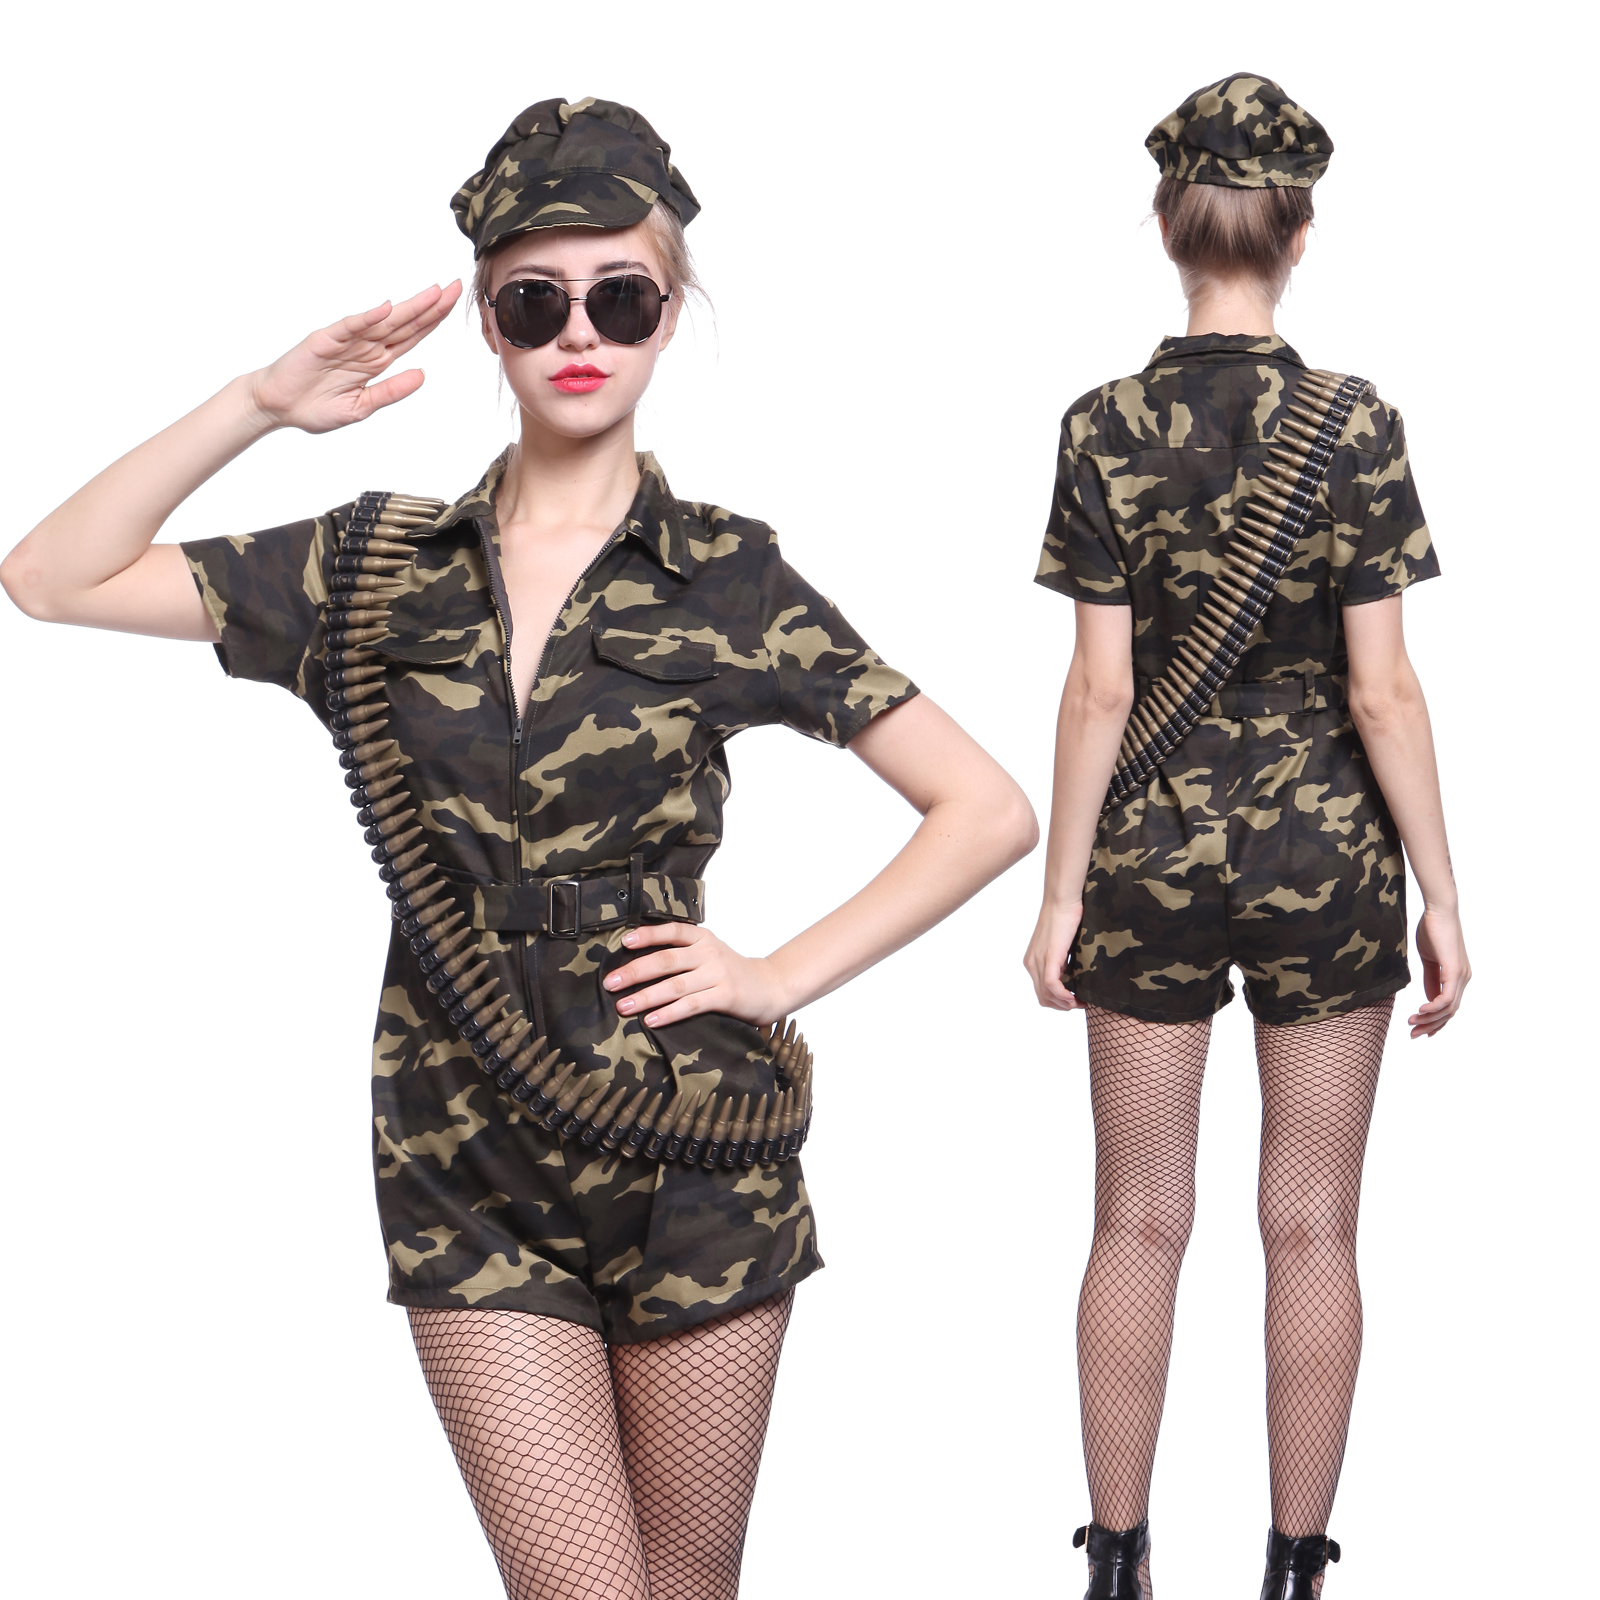 078cc0ac73e Details about Army Girl Ladies Outfit Soldier Fancy Camo Costume Combat  Military Commando Set